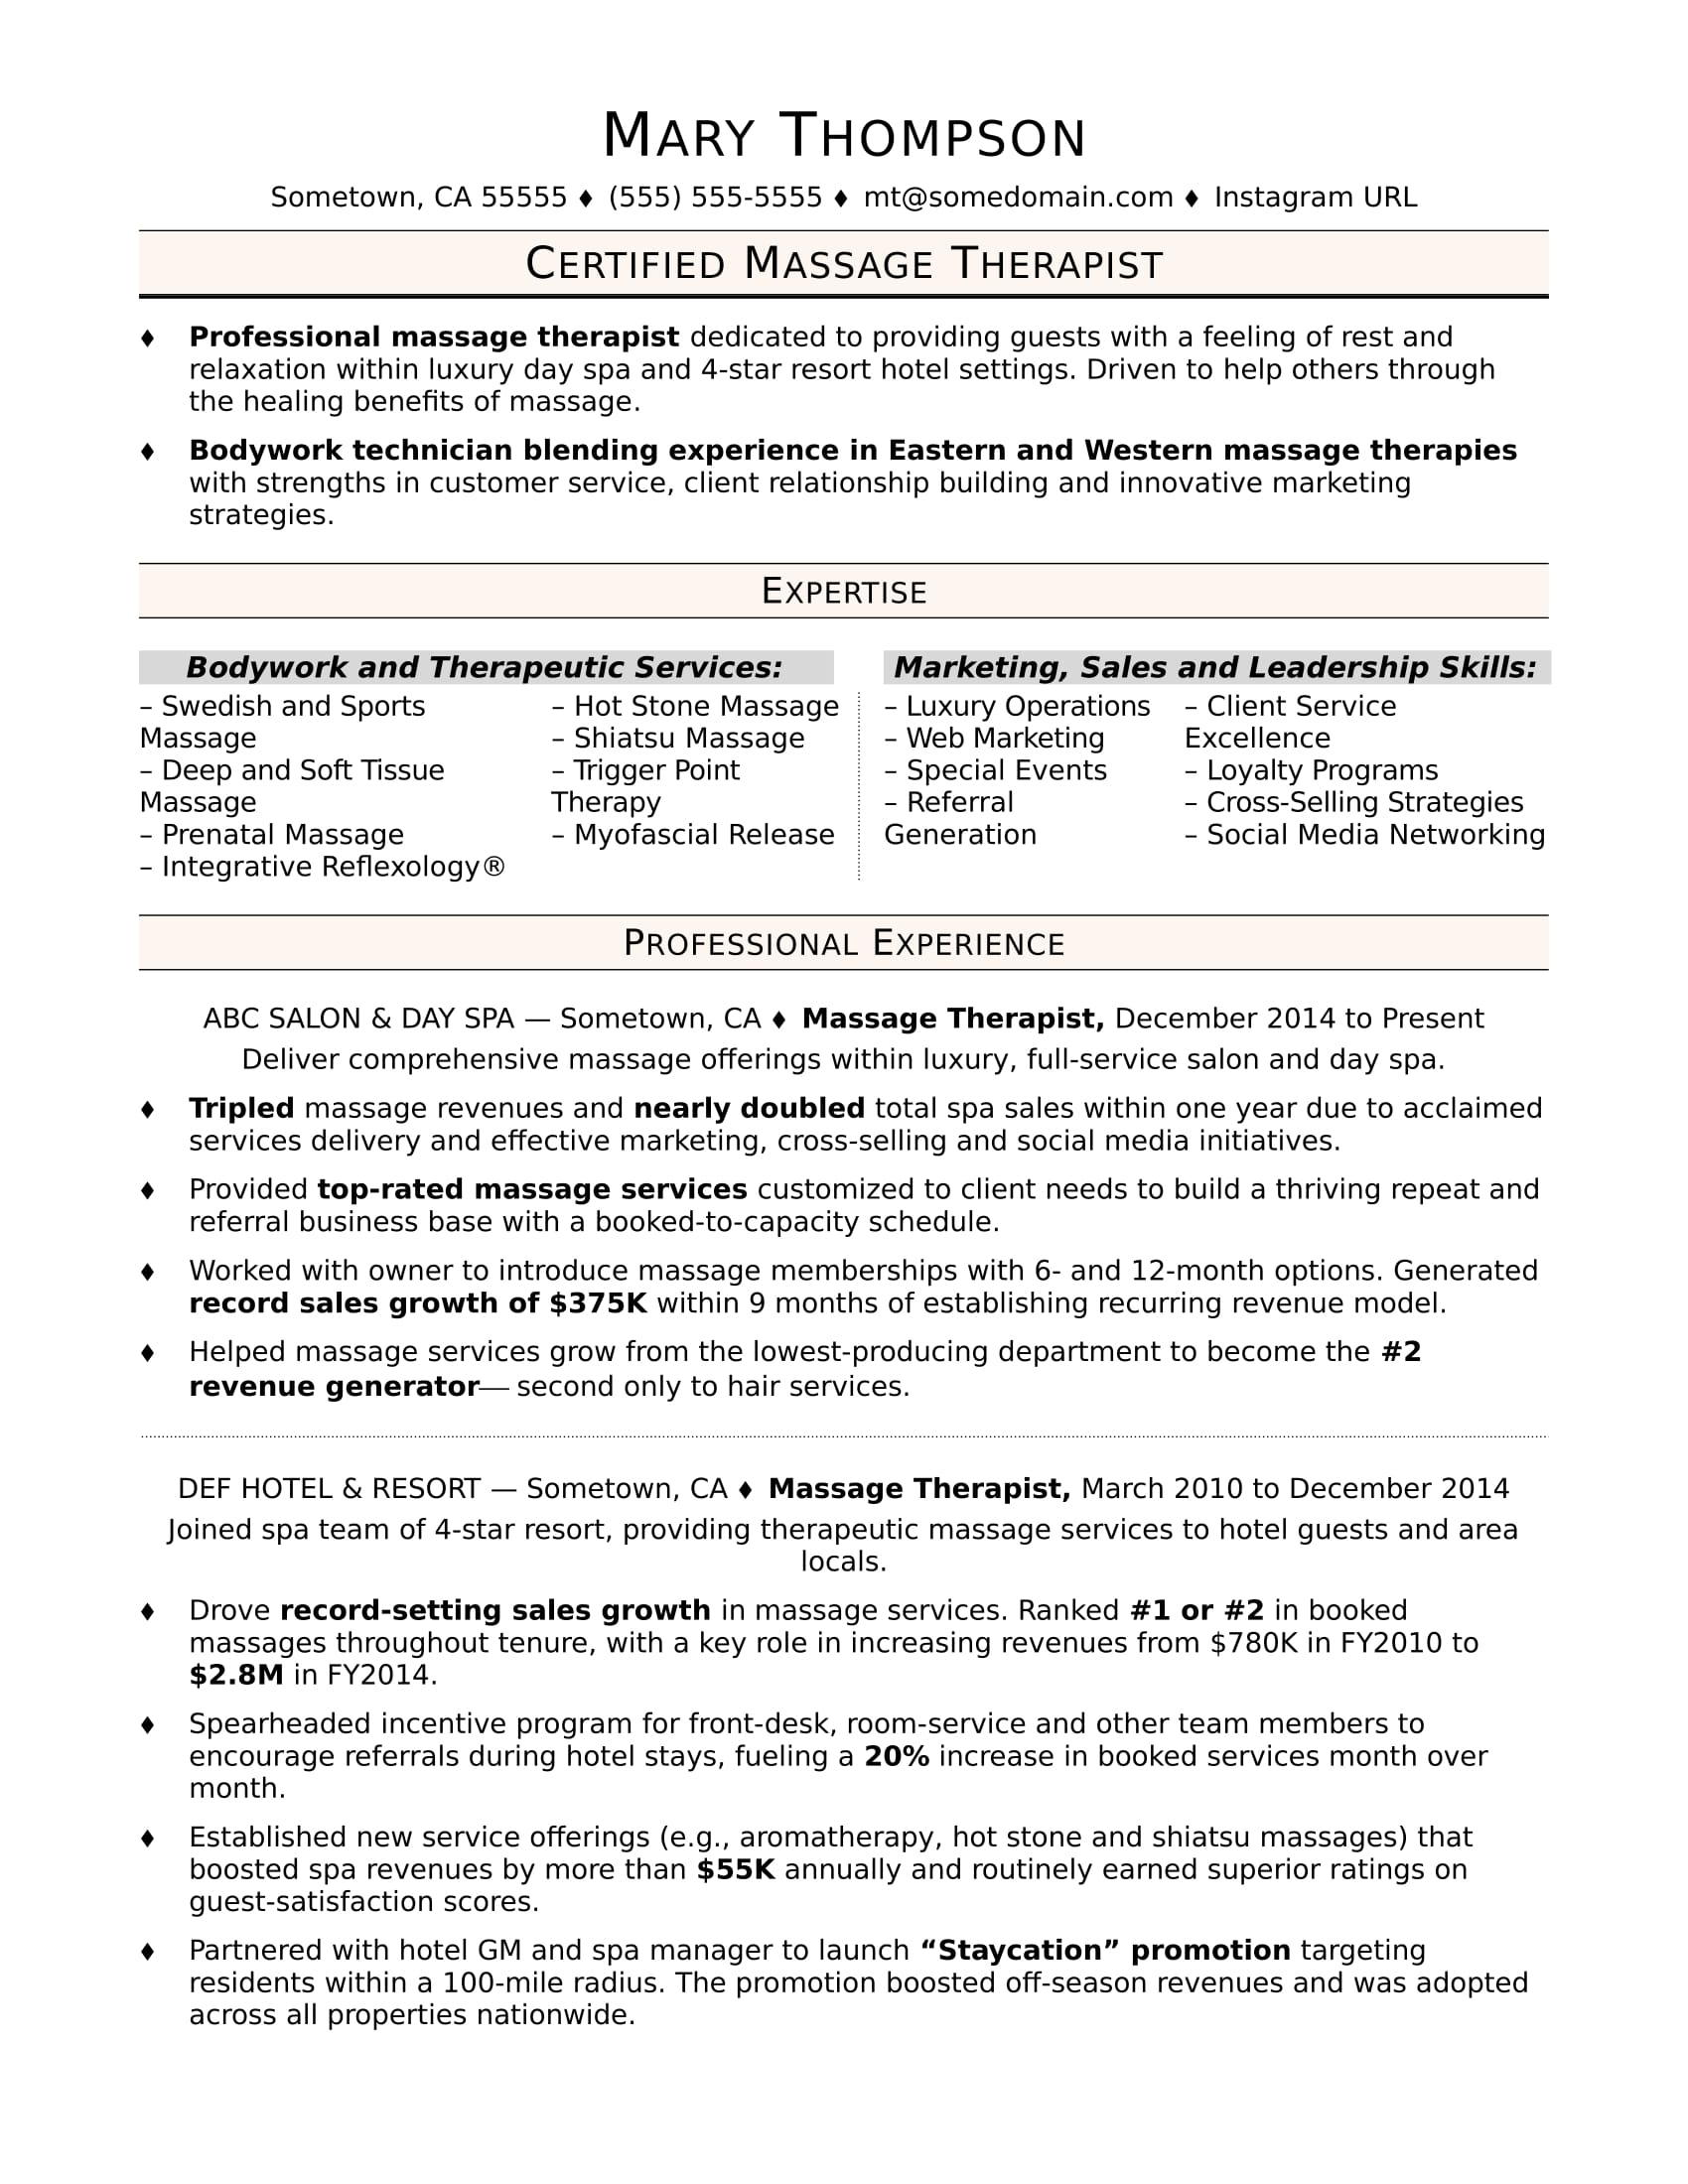 cover letter for spa massage therapist Massage therapist resume objective these skills include database querying, forecasting and planning, the systems analysis, project management, and specific industry knowledgecreate a massage cover letter & resume.